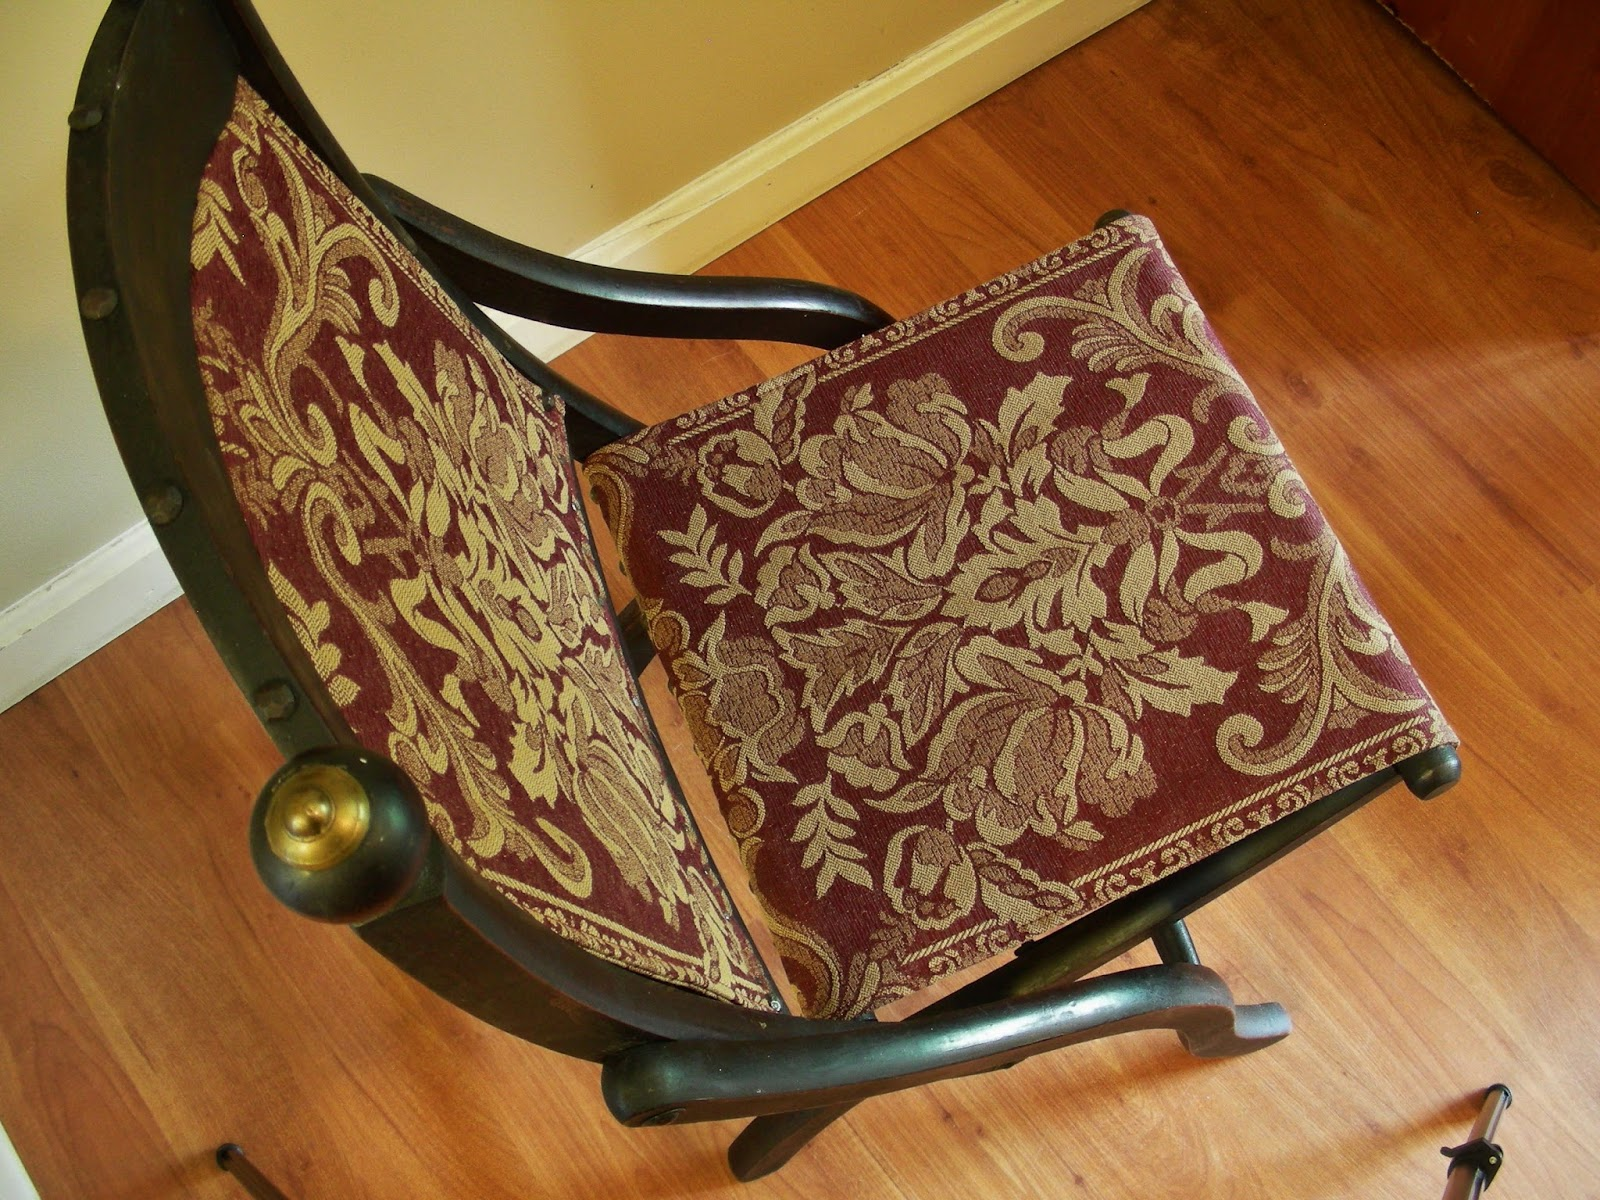 Folding Chair Upcycle And A Half Rocker Canada Destinations Vintage Upcycled Repurposed Stuff